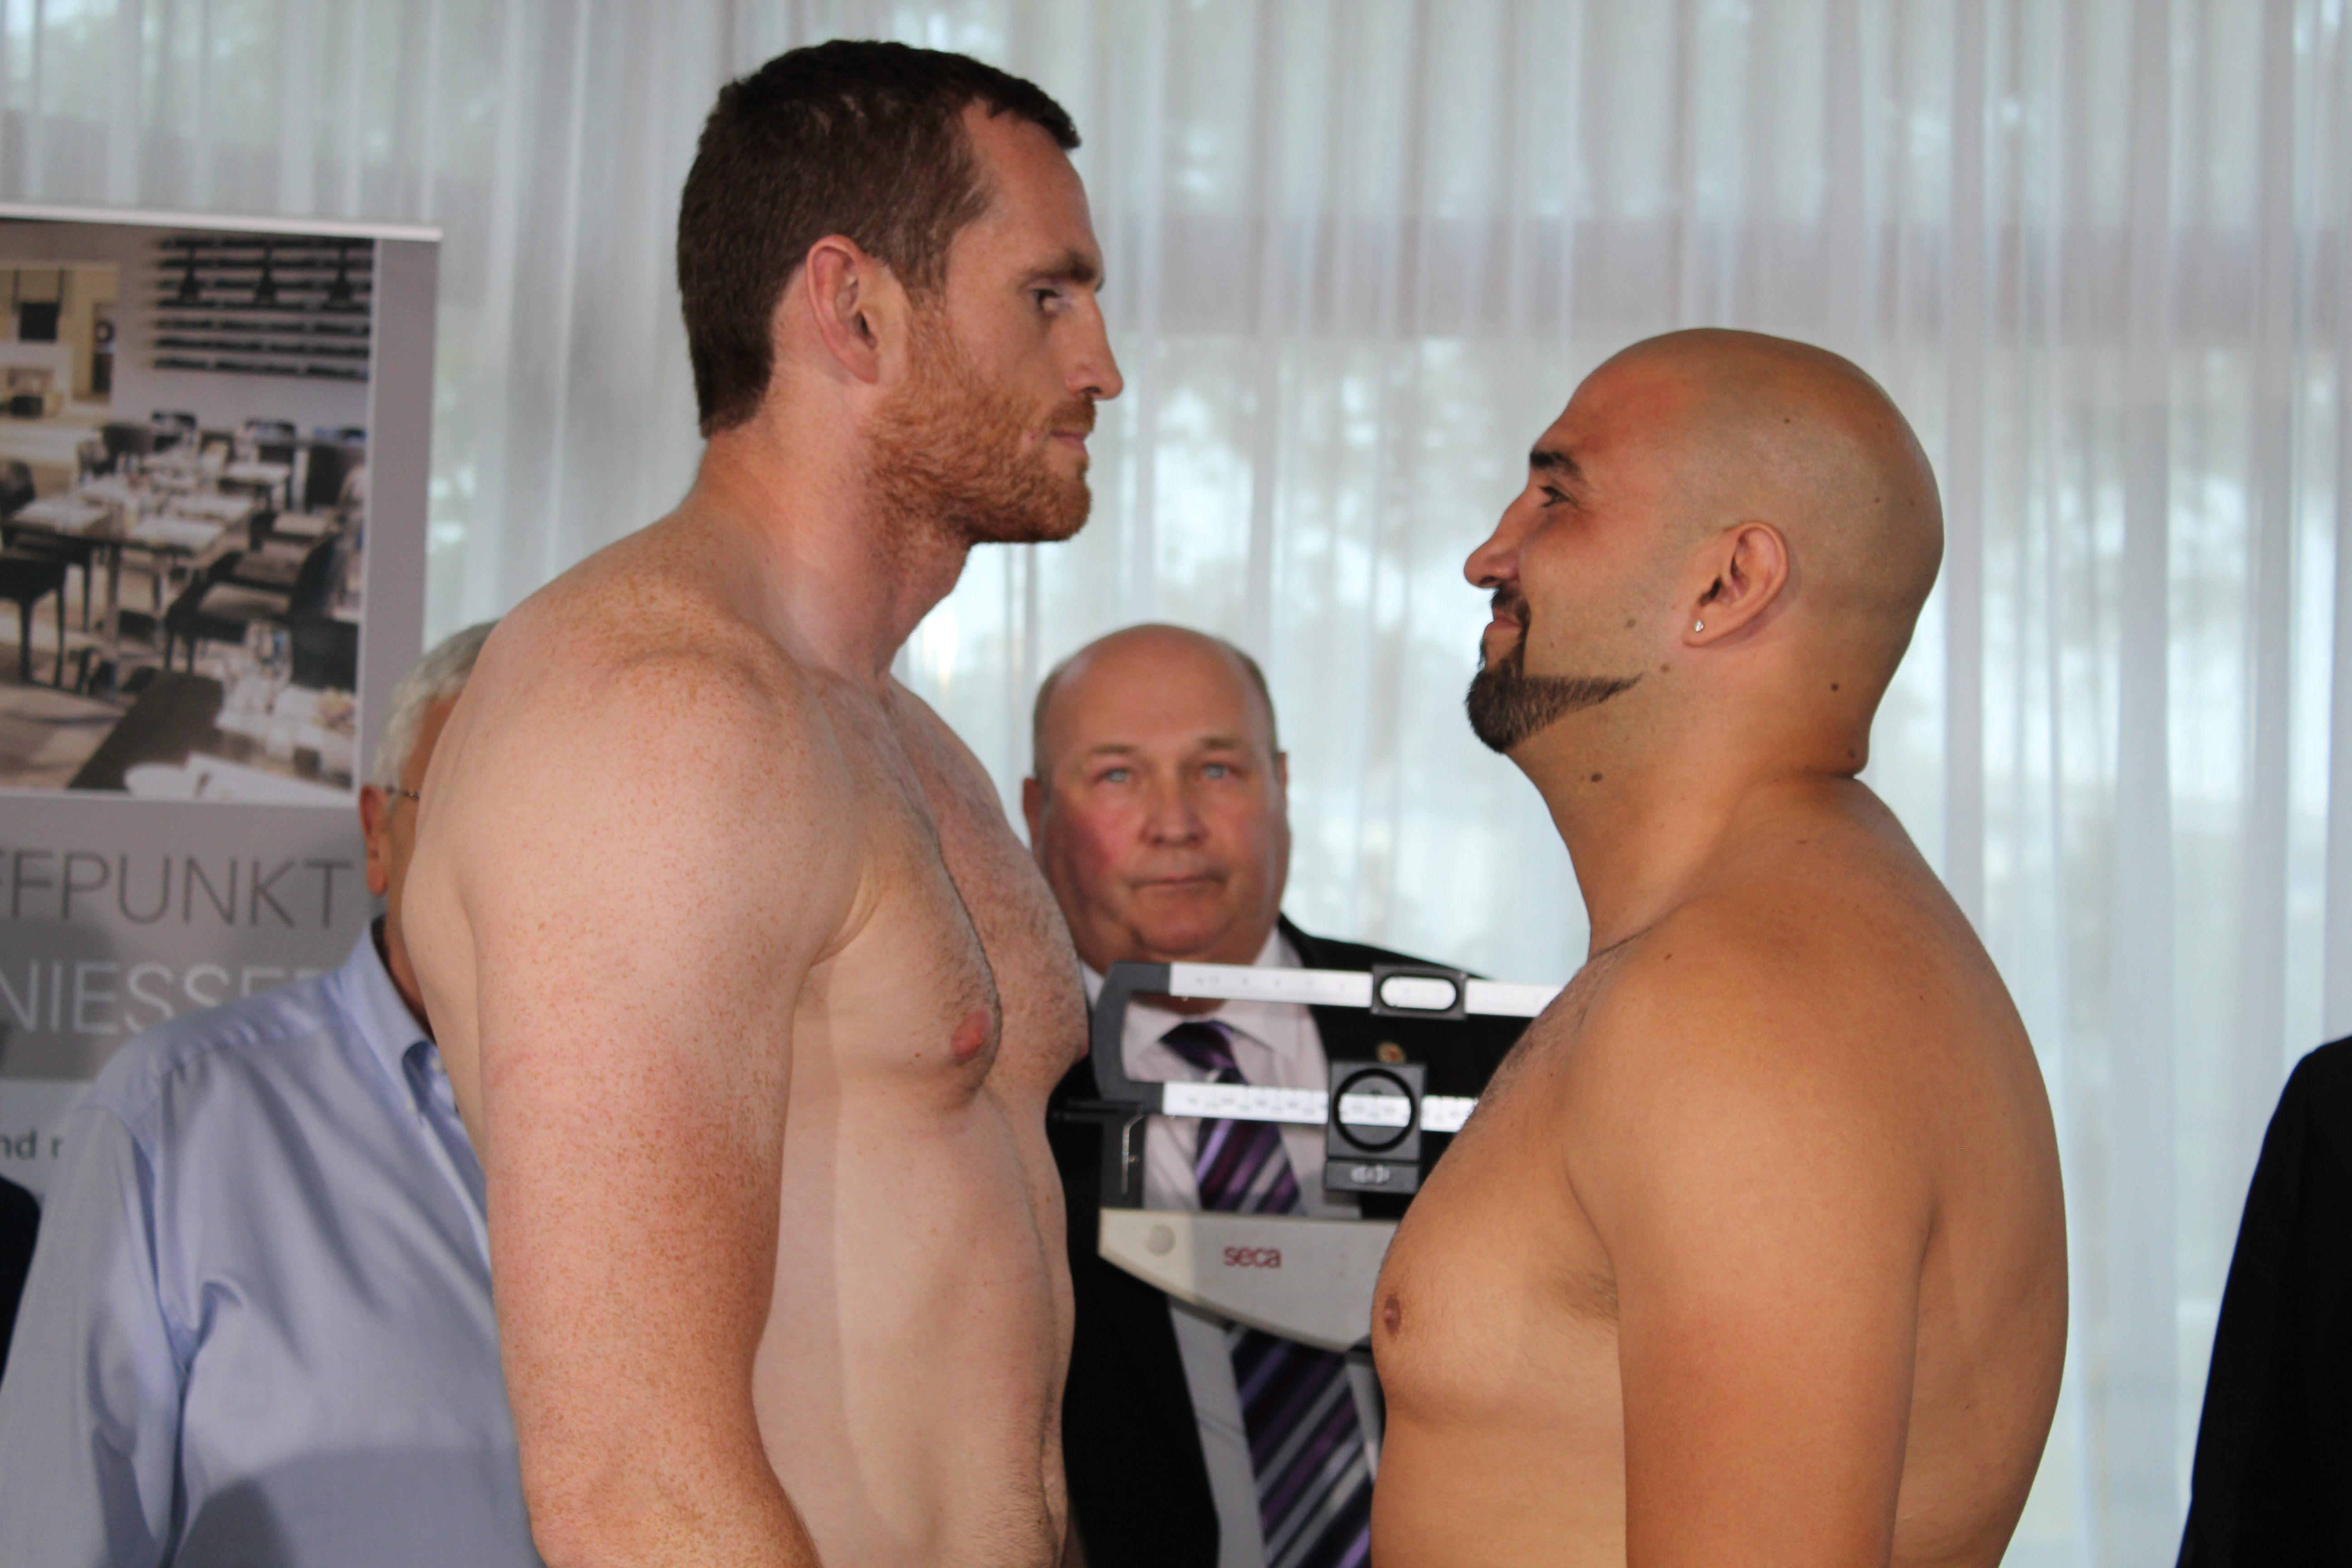 Price and Teper weigh-in ahead of European title showdown